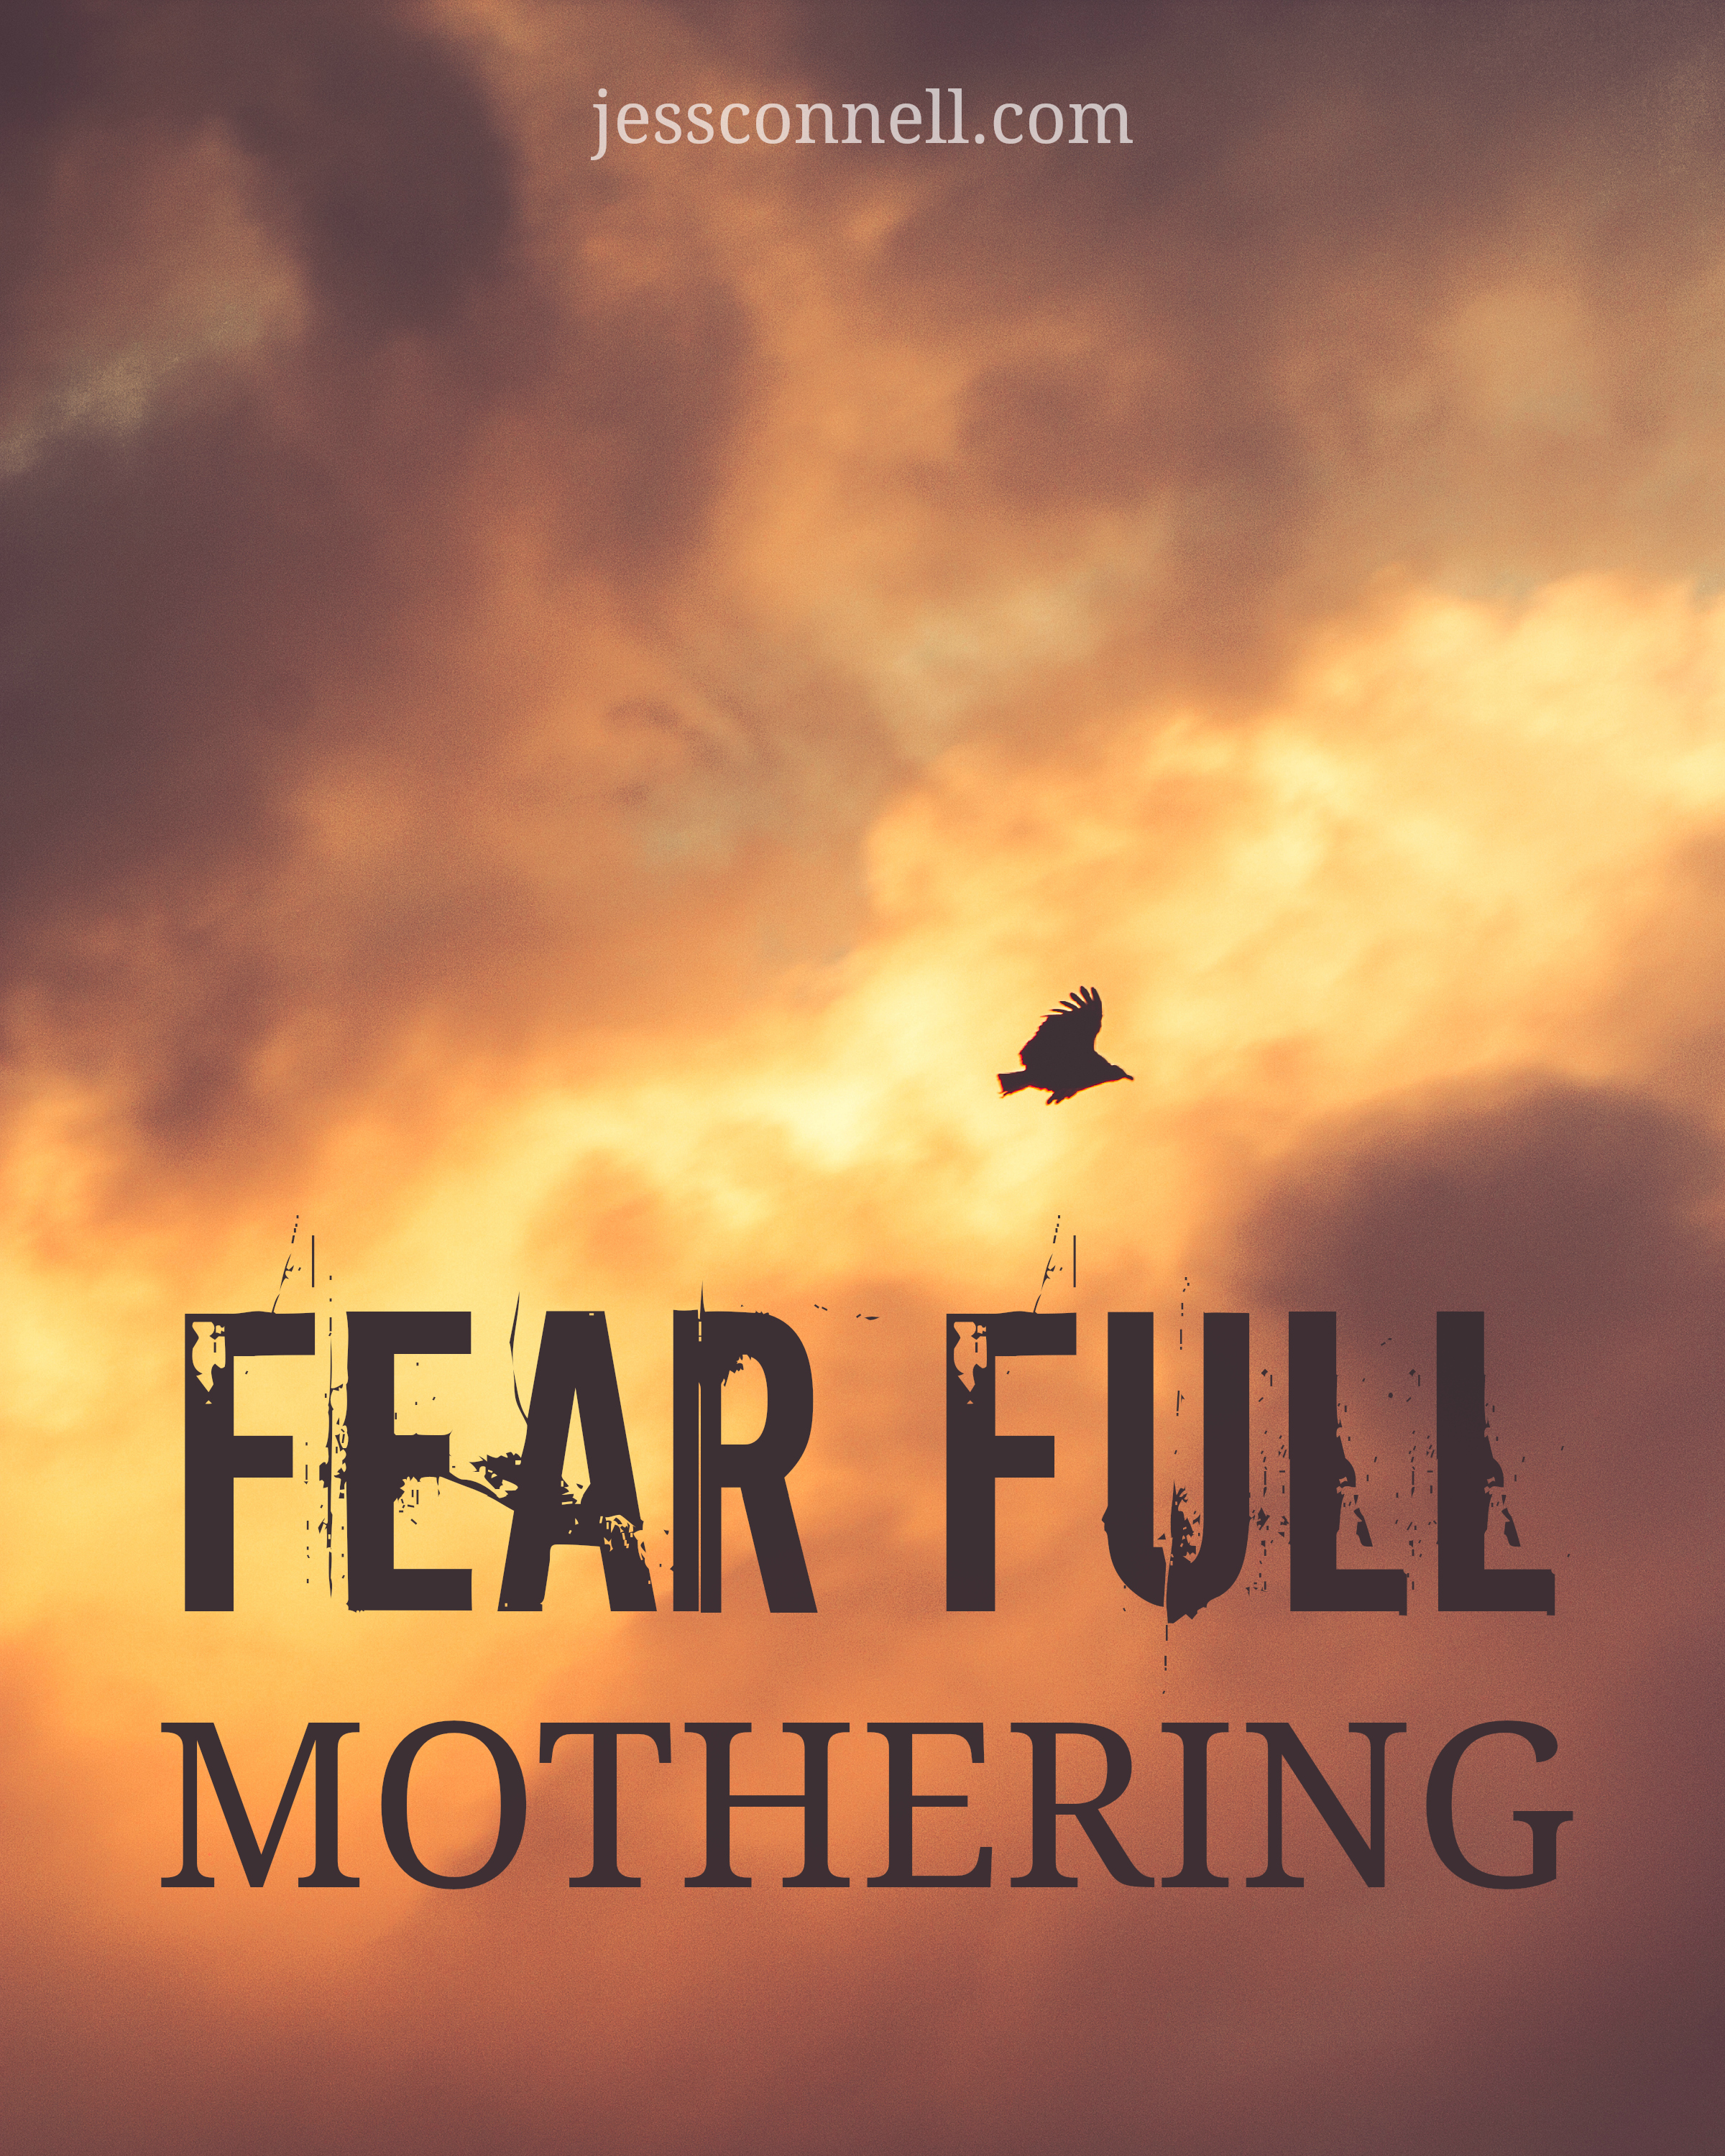 Fear Full Mothering // jessconnell.com